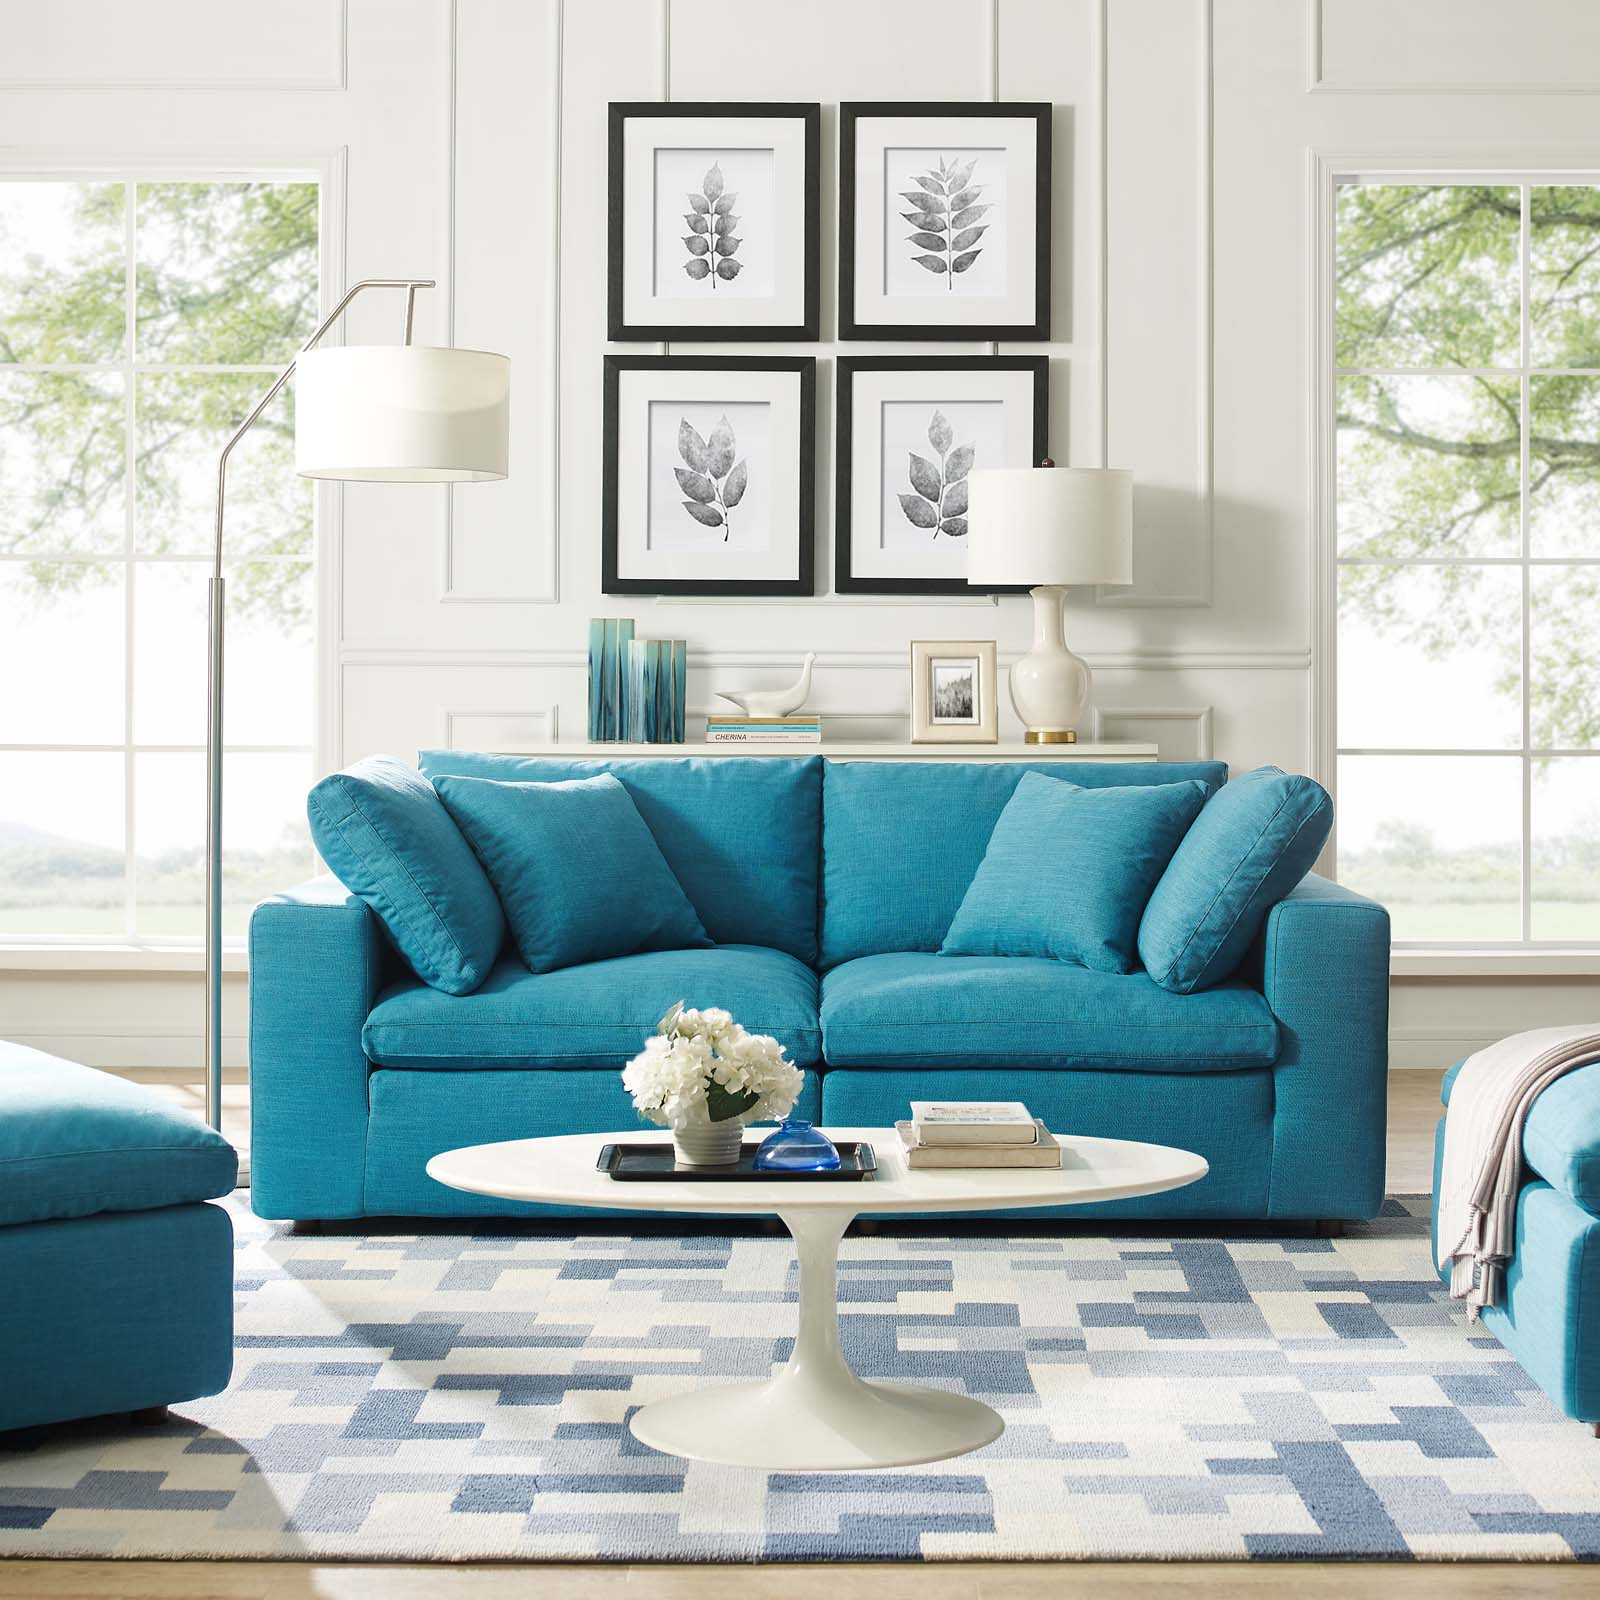 Commix Down Filled Overstuffed 2 Piece Sectional Sofa Set Throughout Down Filled Sectional Sofas (View 6 of 15)